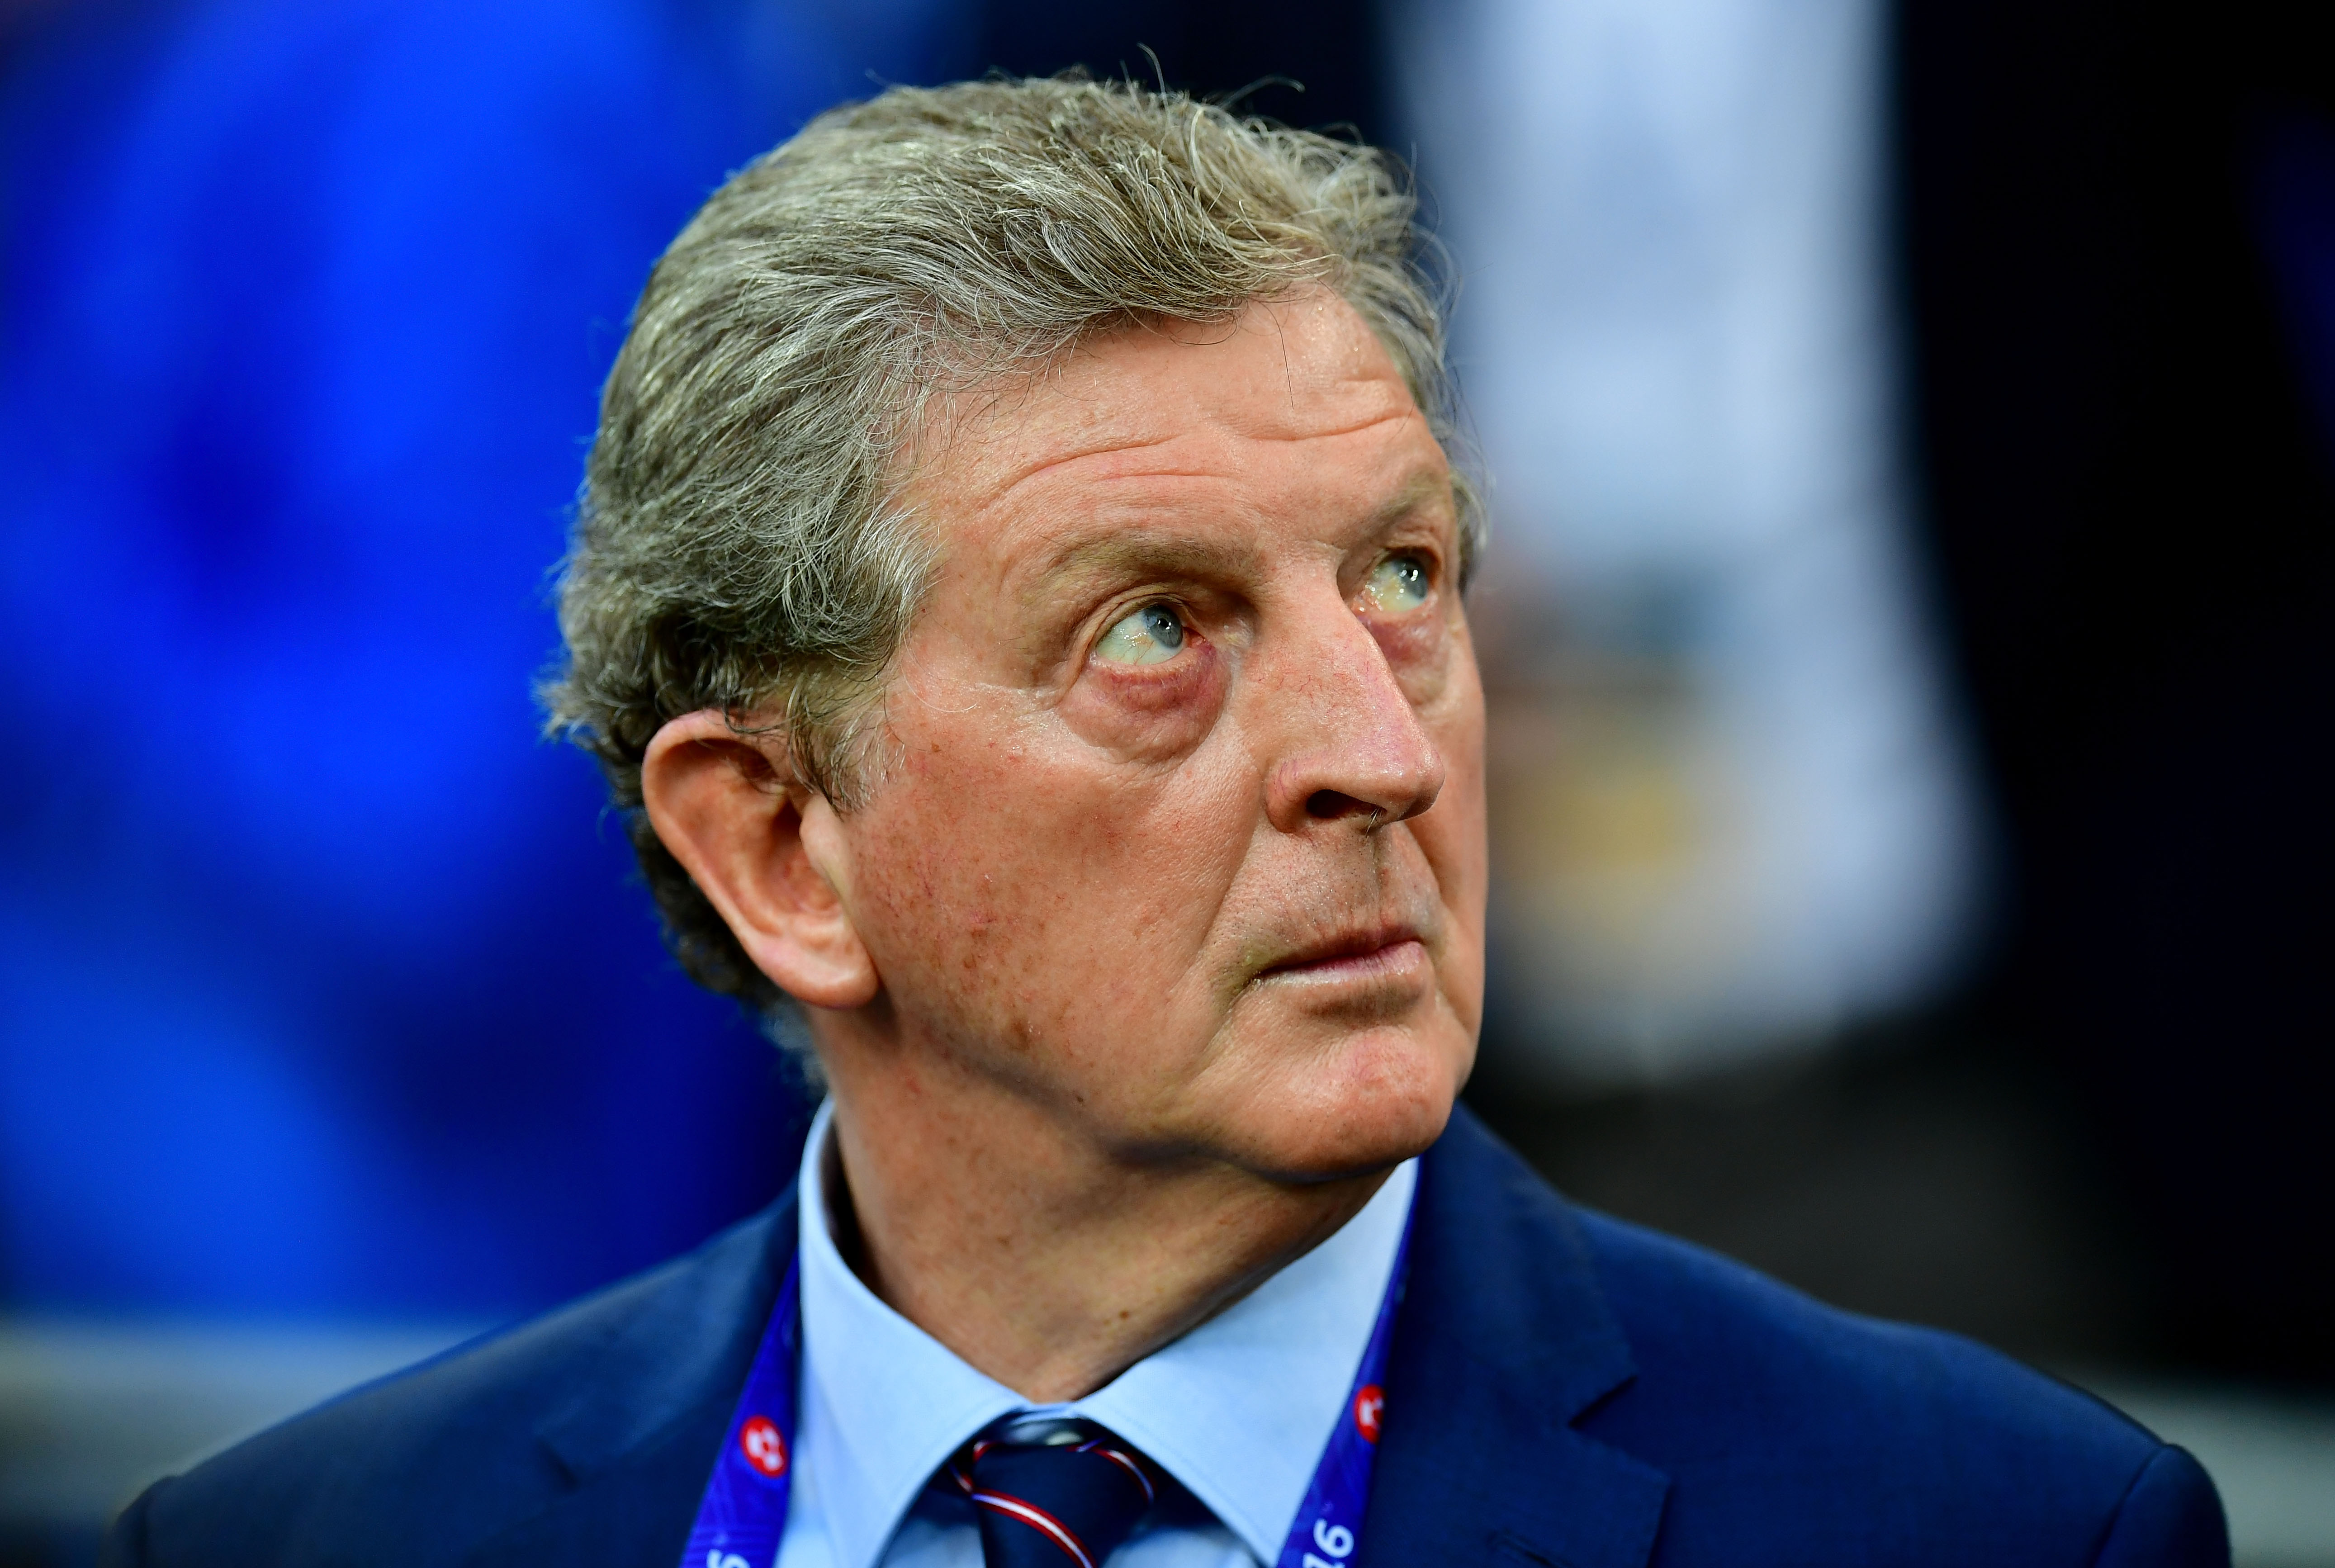 Euro 2016: Joey Barton blasts 'energy vampire' Roy Hodgson after England's draw with Russia